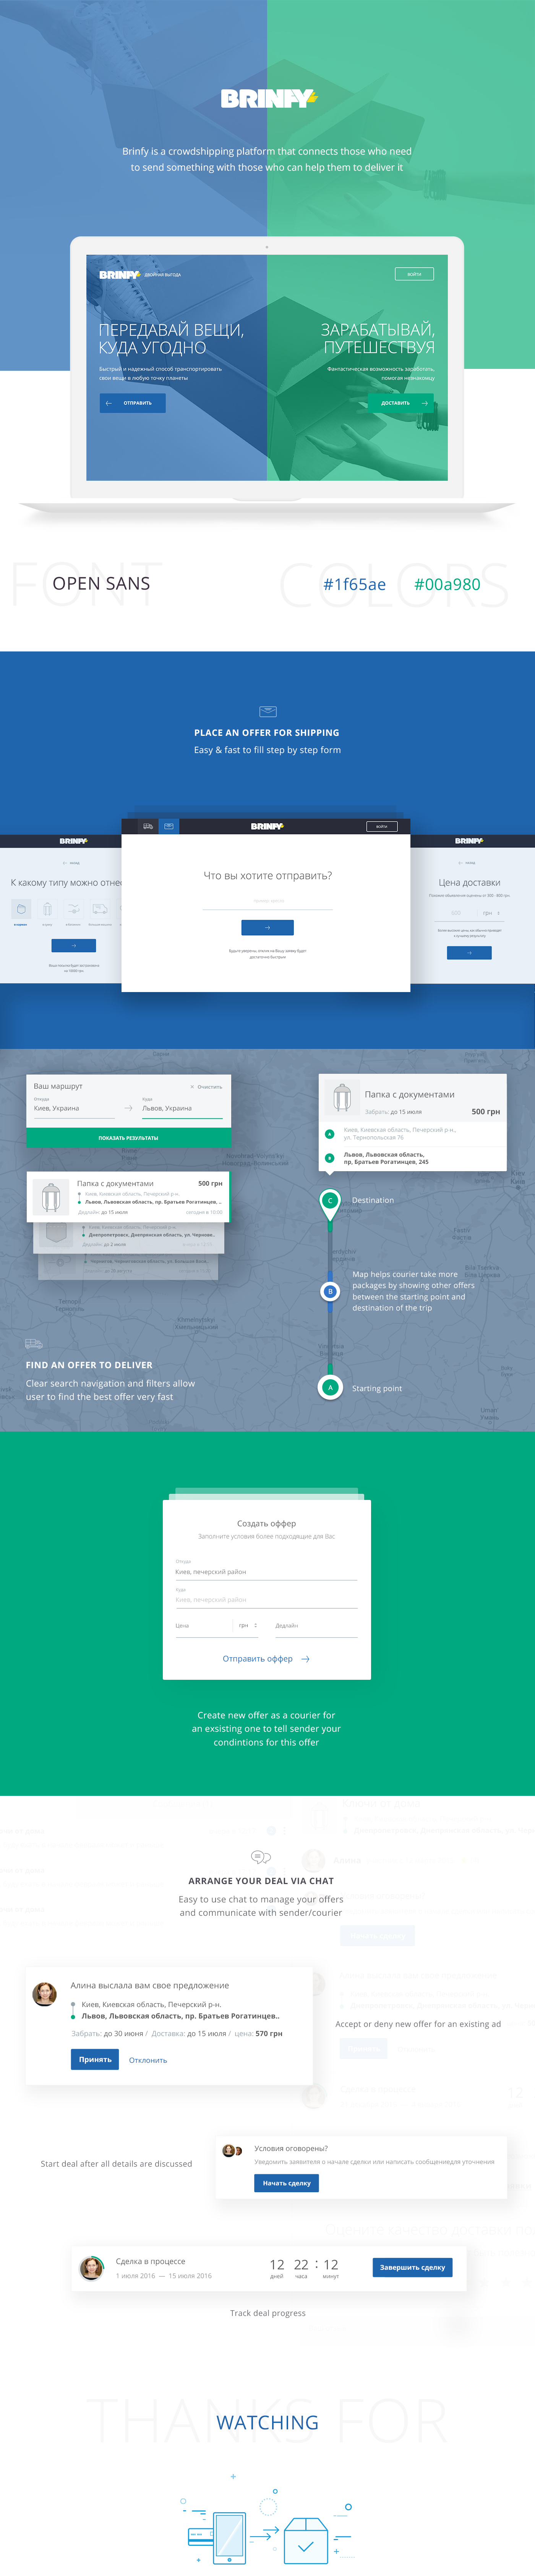 Crowdshipping delivery shipping Webdesign UI ux